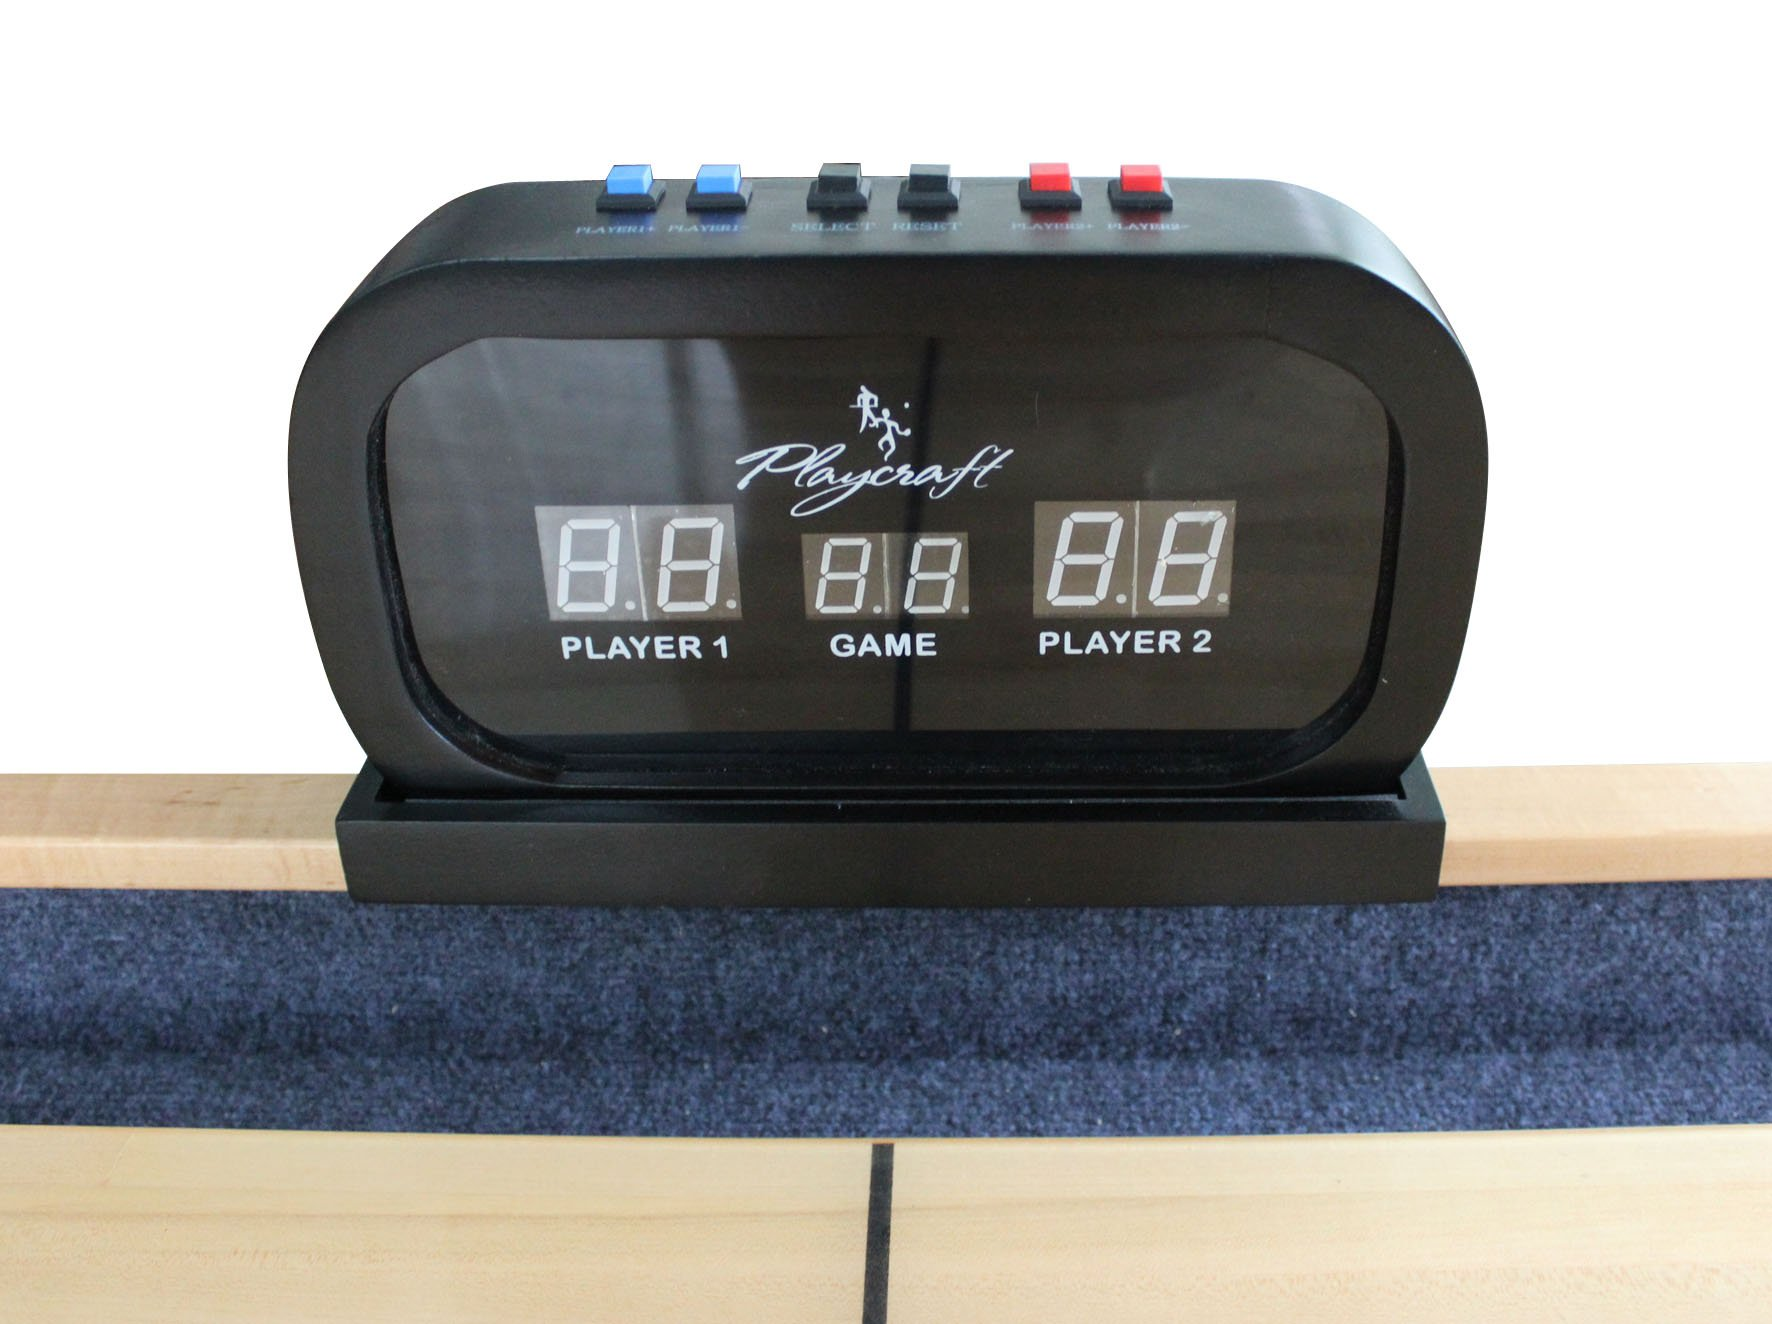 Playcraft Electronic Scorer for Home Recreation Shuffleboard Table - Black by Playcraft